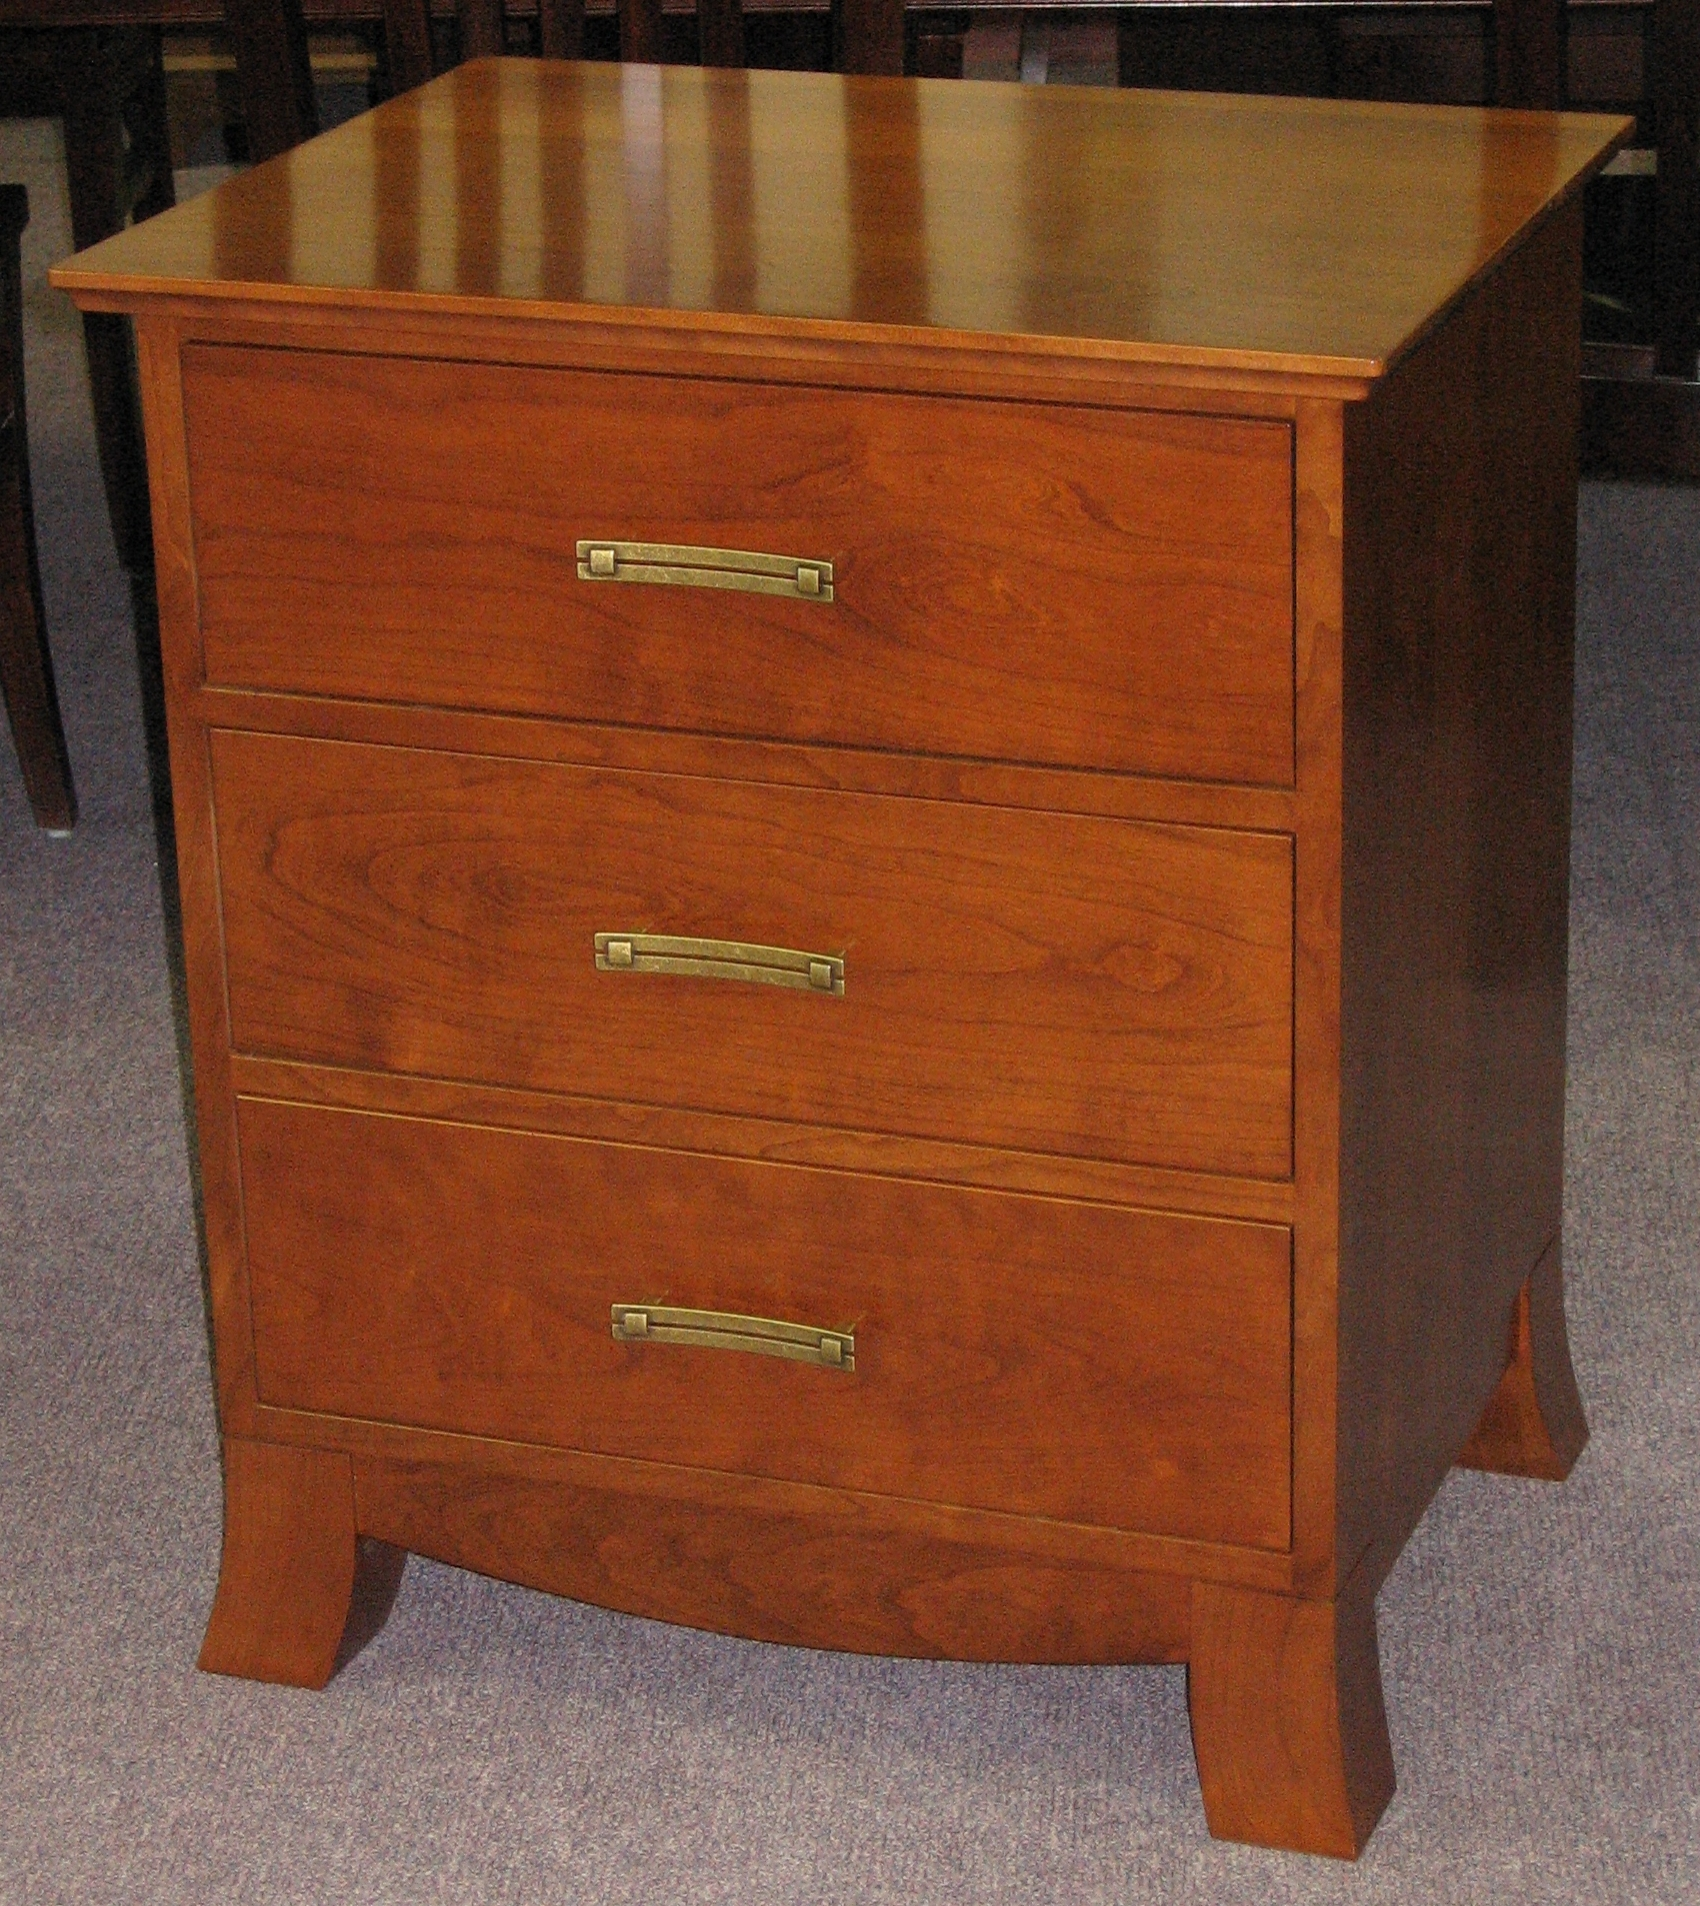 arts-and-craft-style-cherry-wood-two-drawer-nightstand.JPG